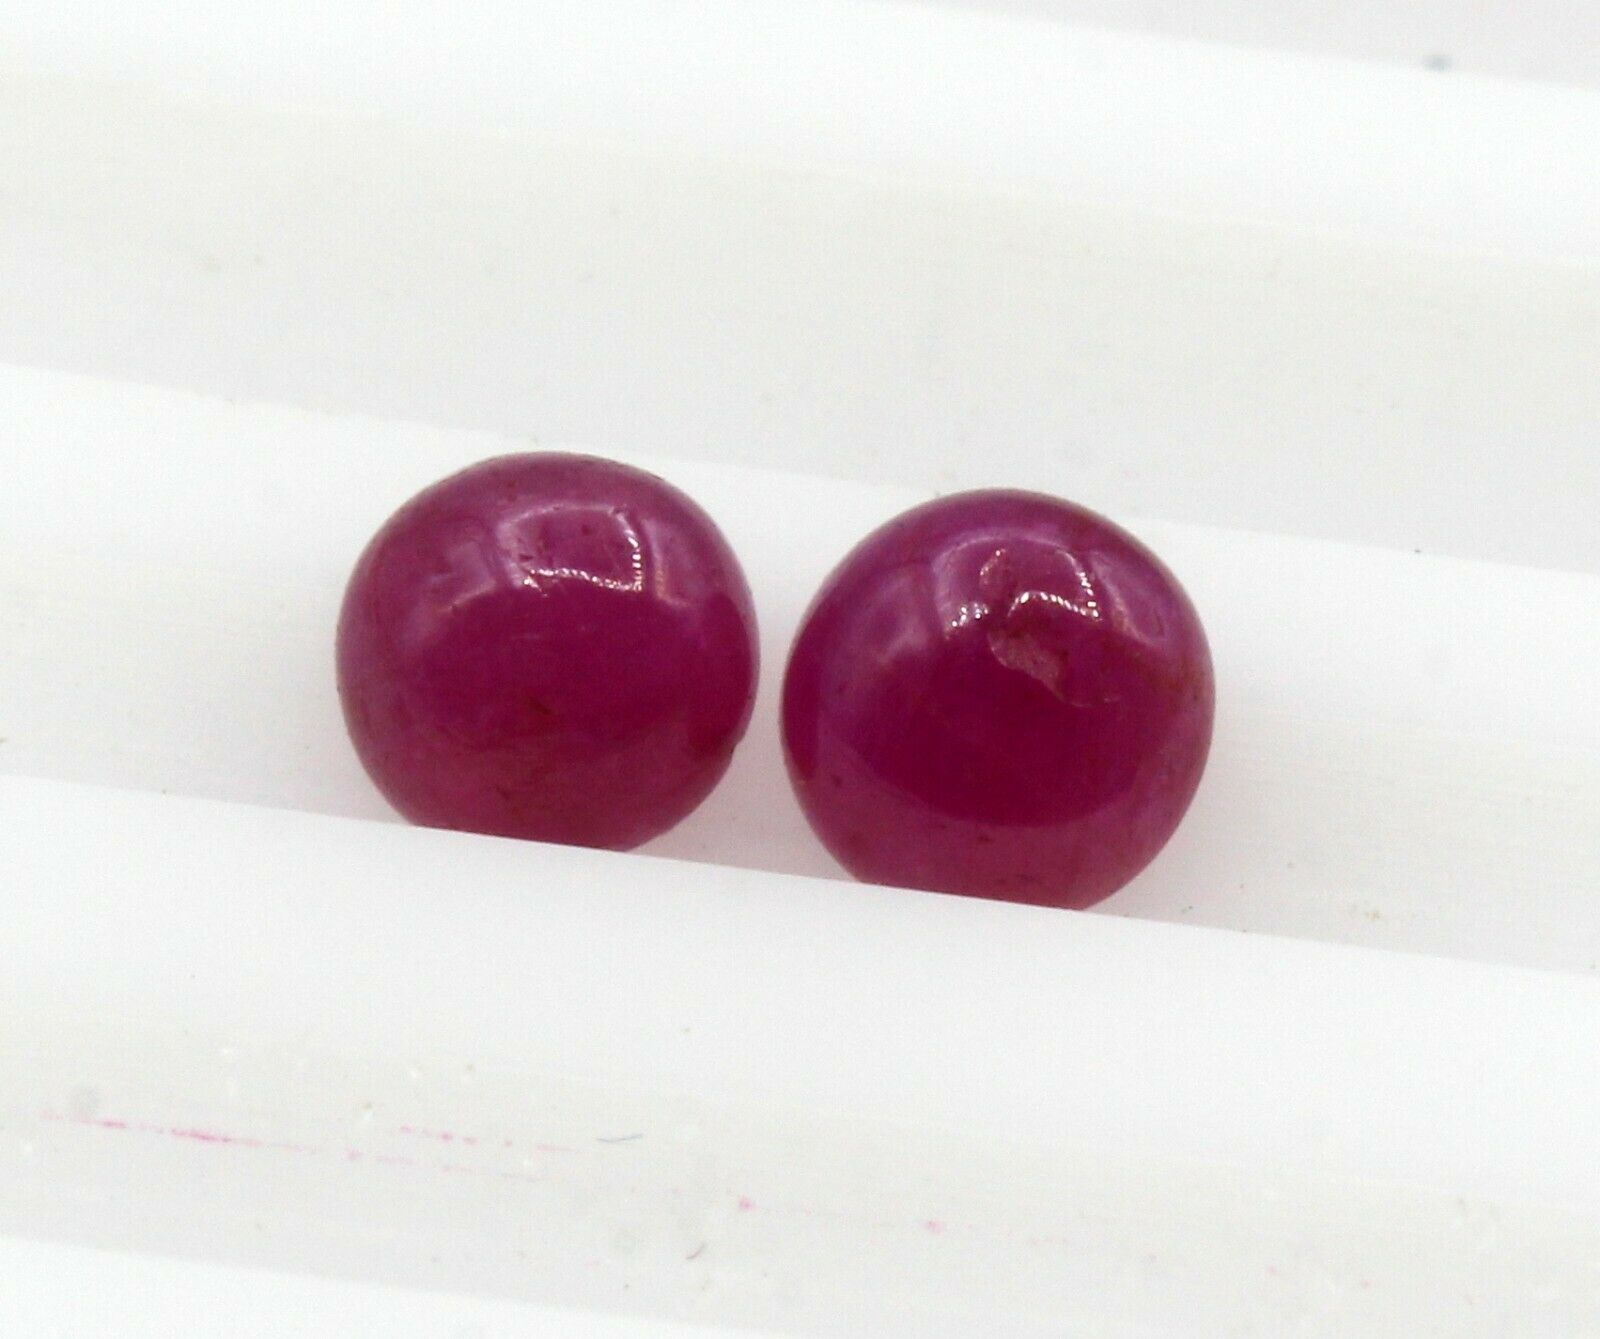 0.86 Ct Ruby Natural Gemstone Burma Lot Of 2 Piece Cabochon Shape Certified